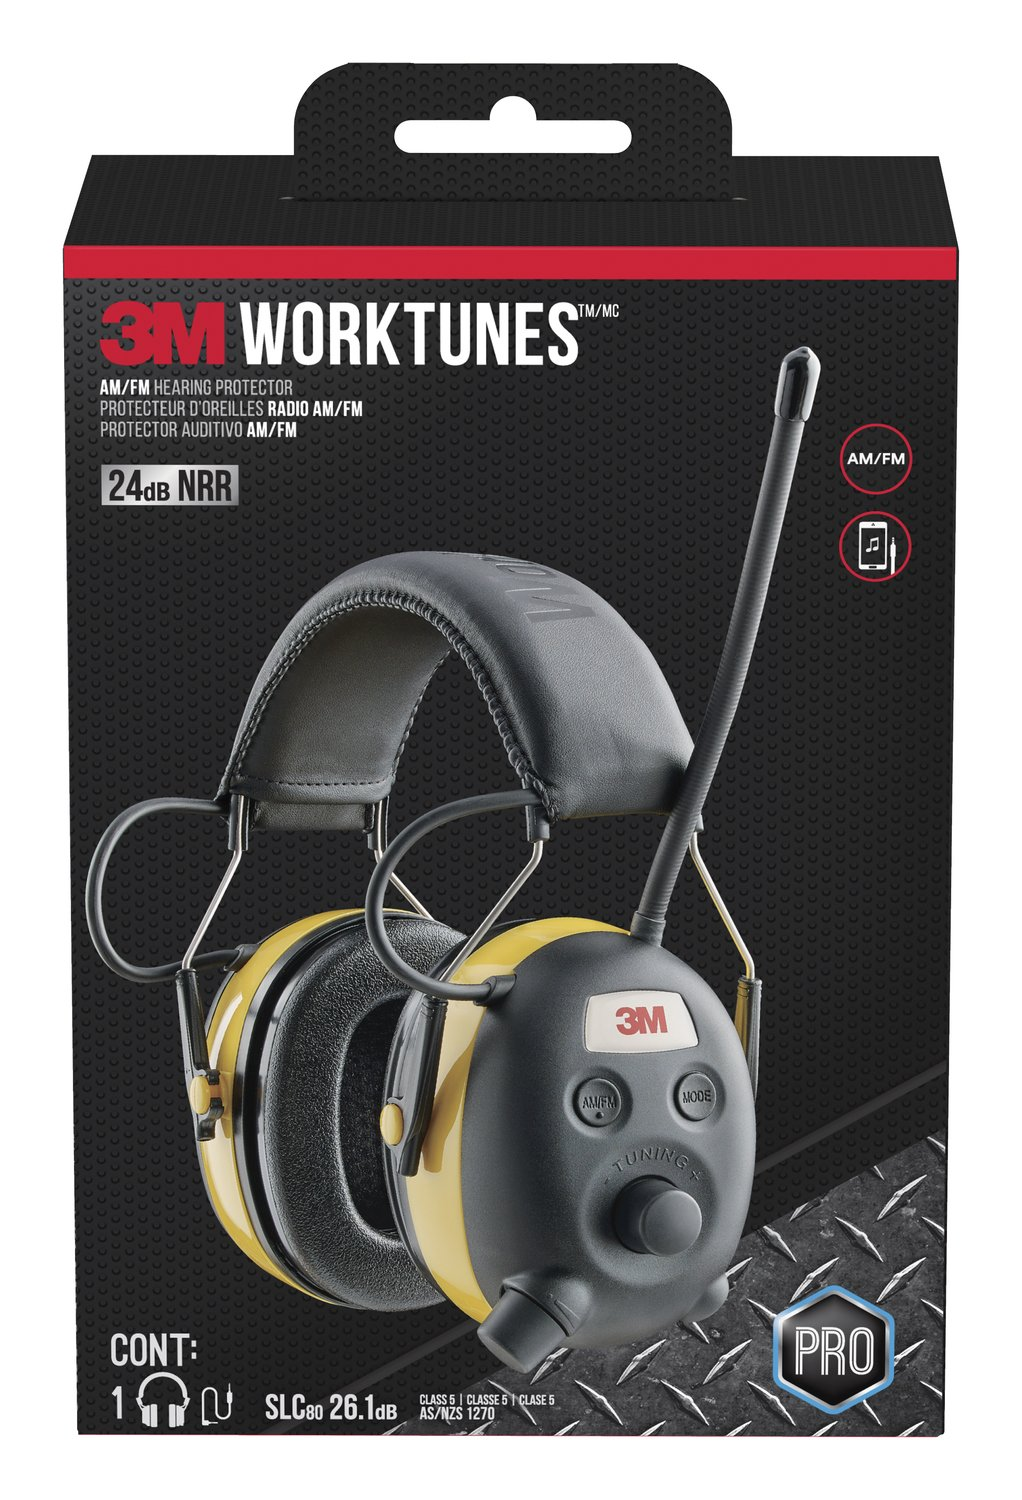 3M WorkTunes Connect Hearing Protector, Wired - 90541-80025T by 3M Safety